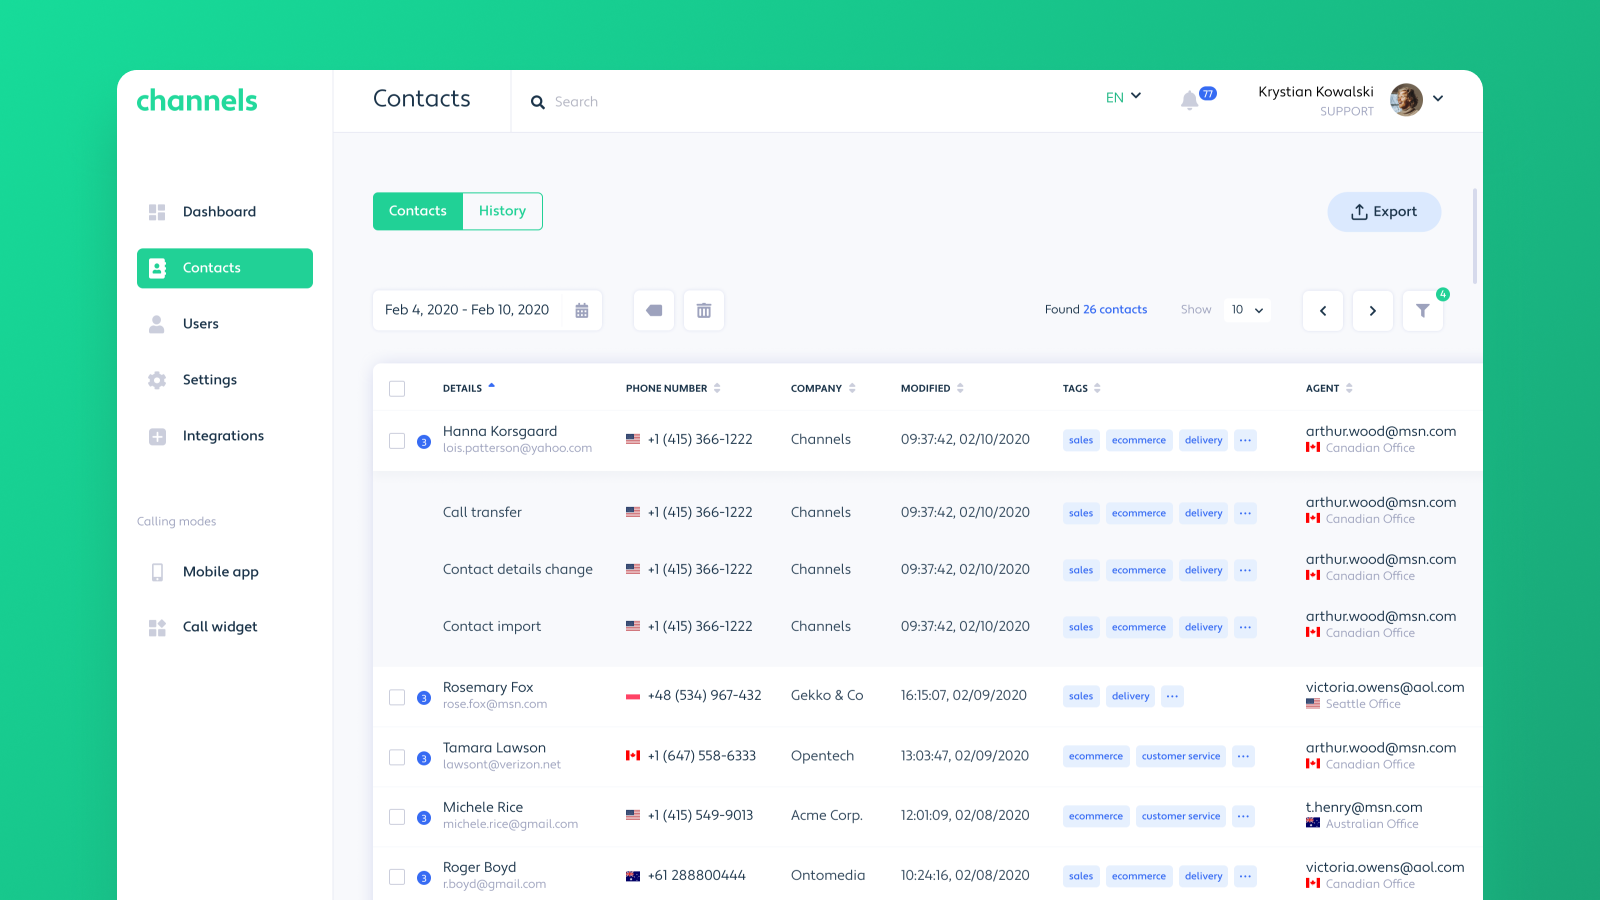 Contacts in Channels Web App